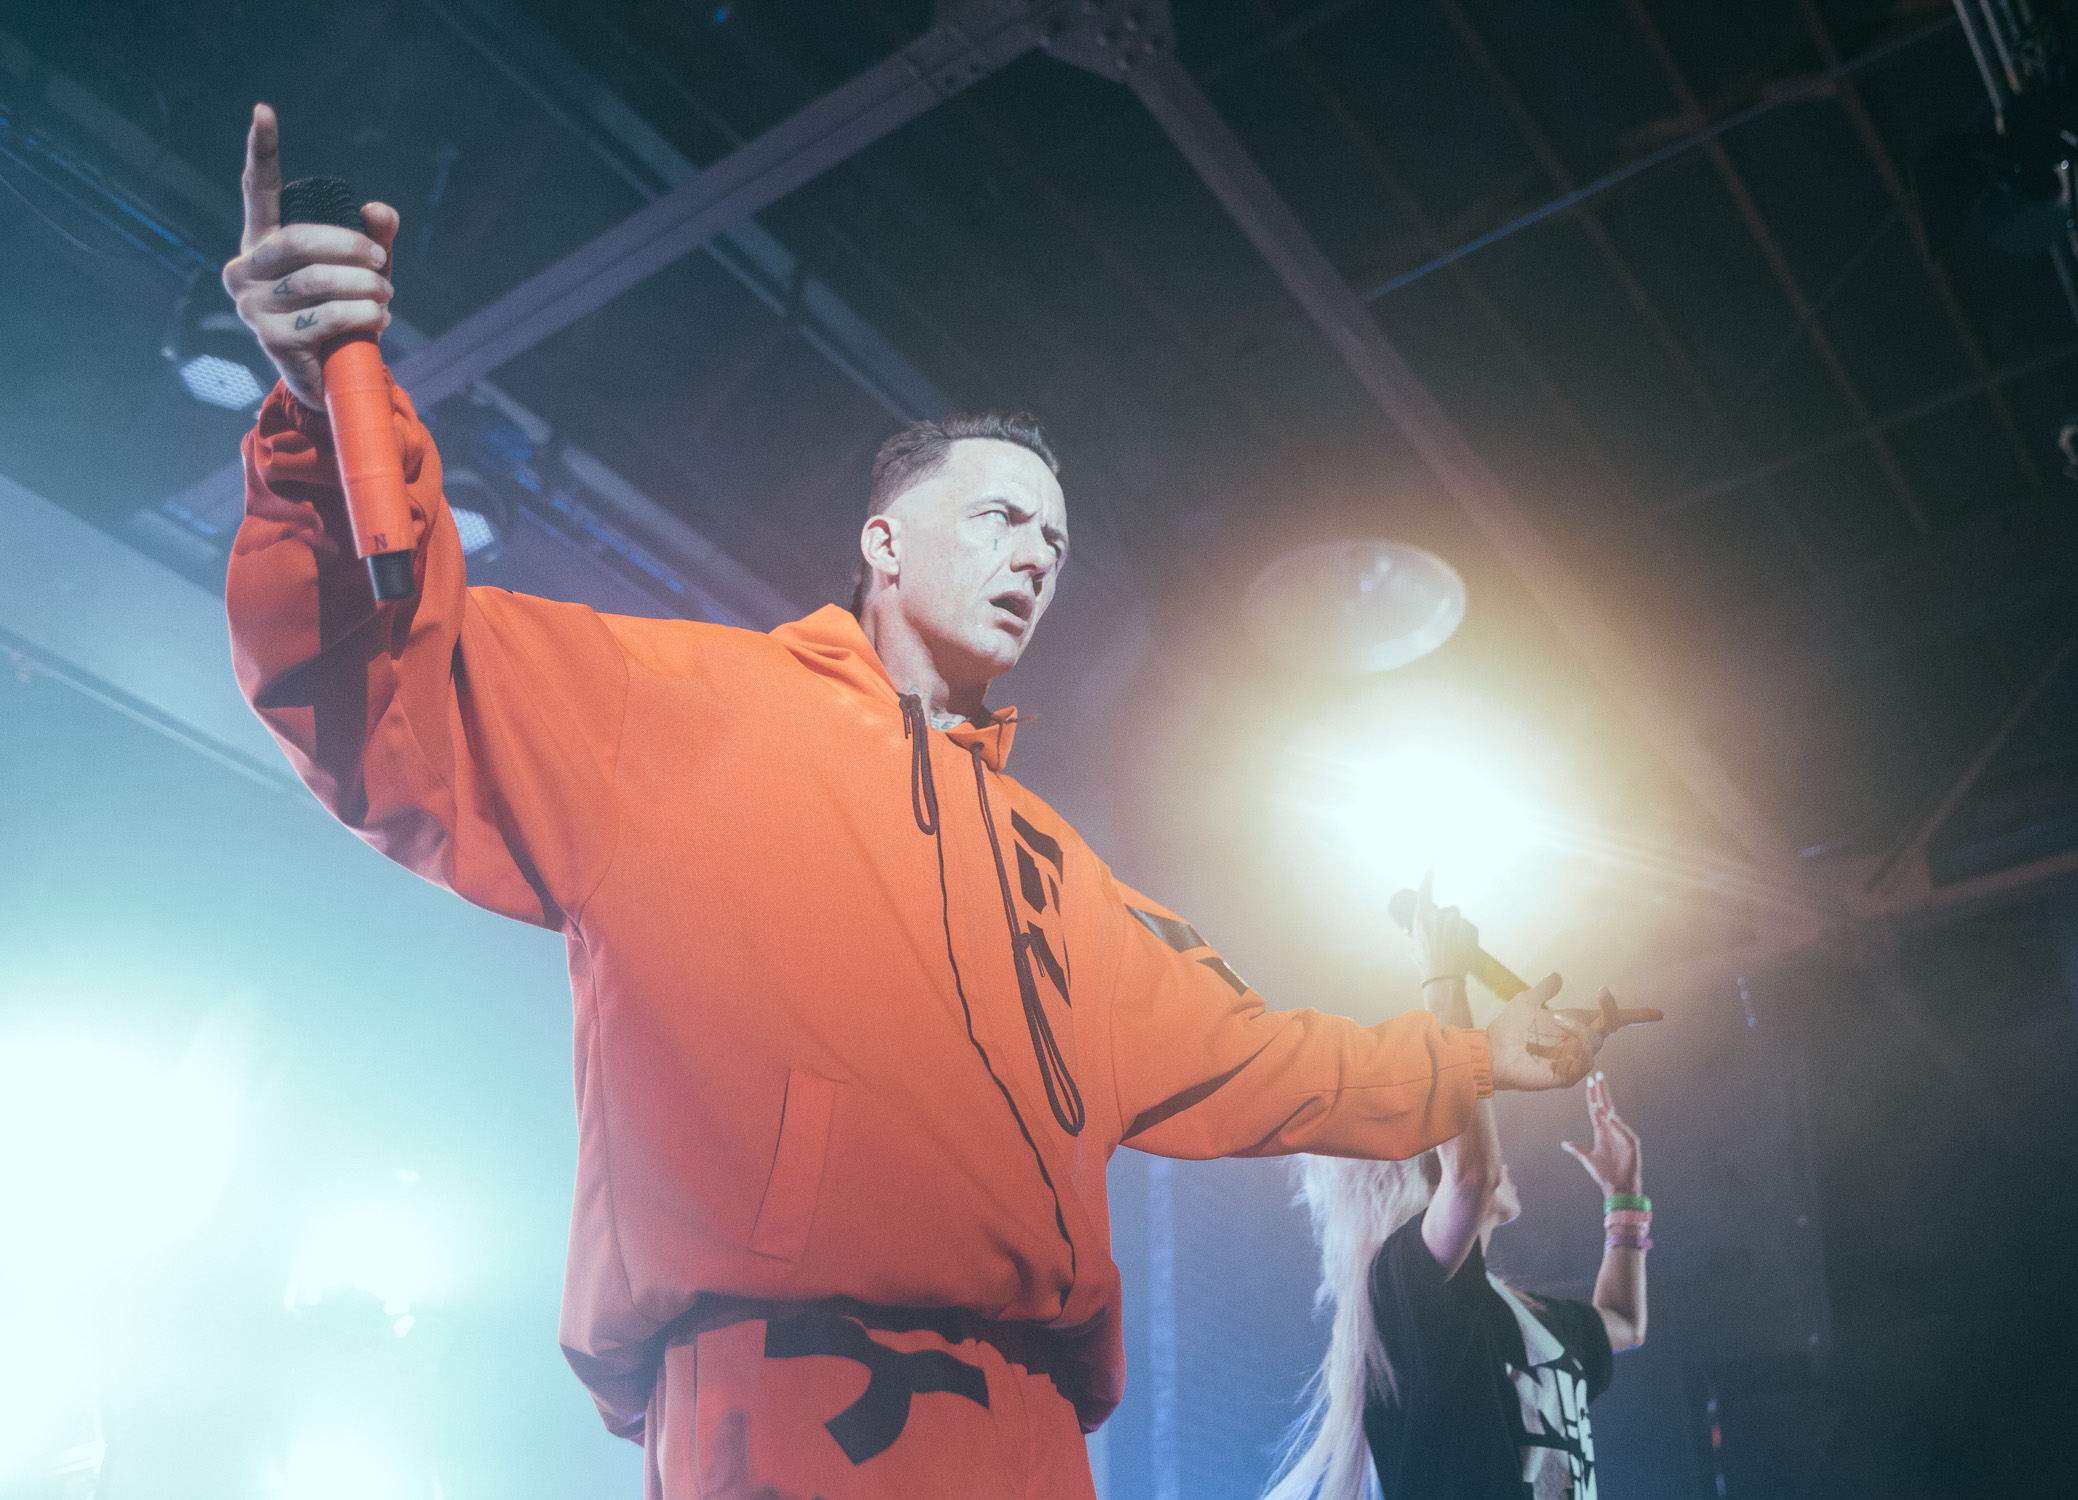 Die Antwoord performs at Iron City in Birmingham, Alabama on October 27th, 2016. (Photo by David A. Smith/DSmithScenes)